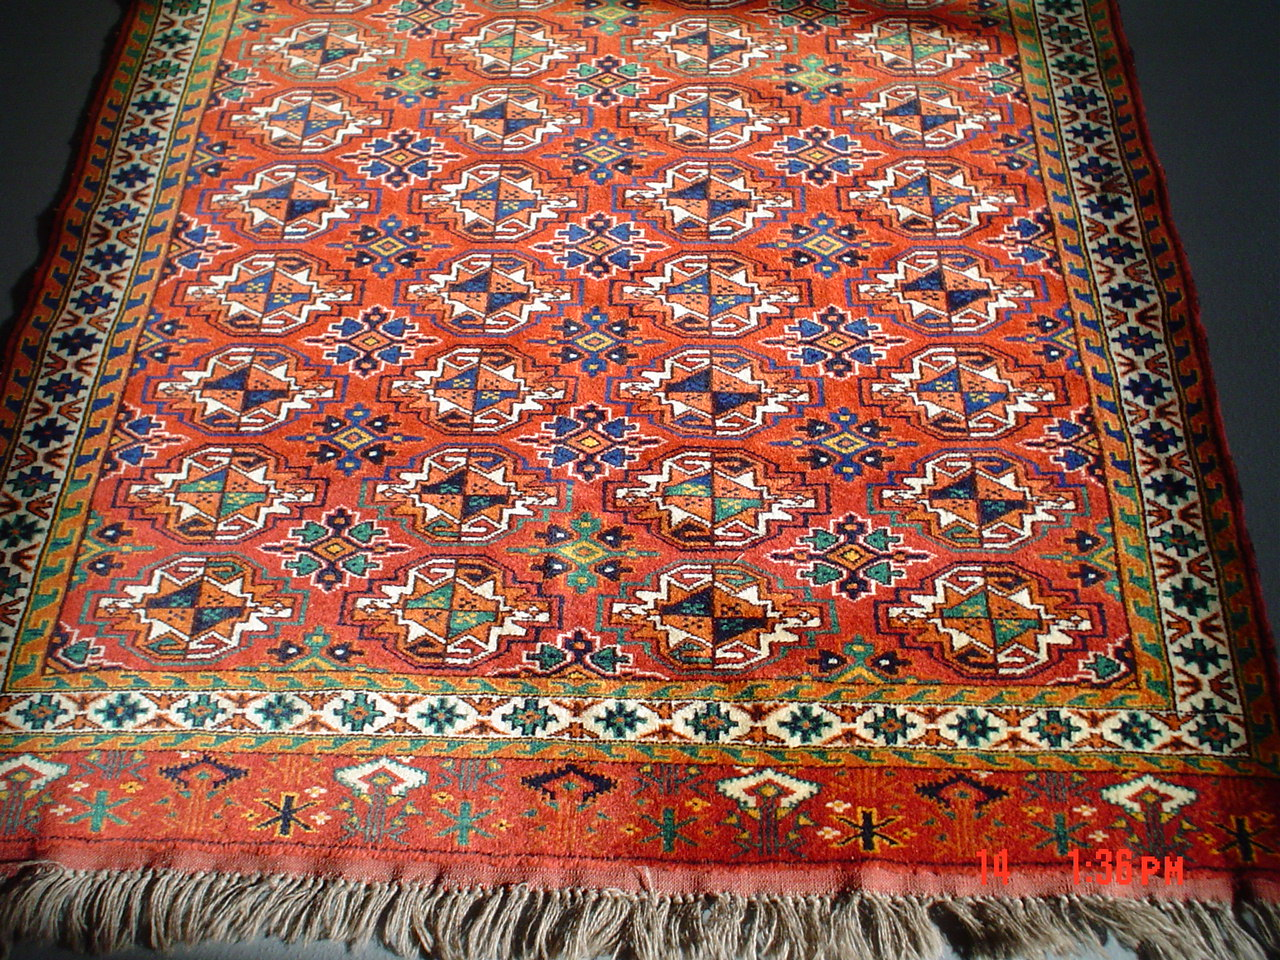 #11) 4 x 6 Turkoman rug, Afghanistan. Older rug, new condition, tight weave, very pretty.